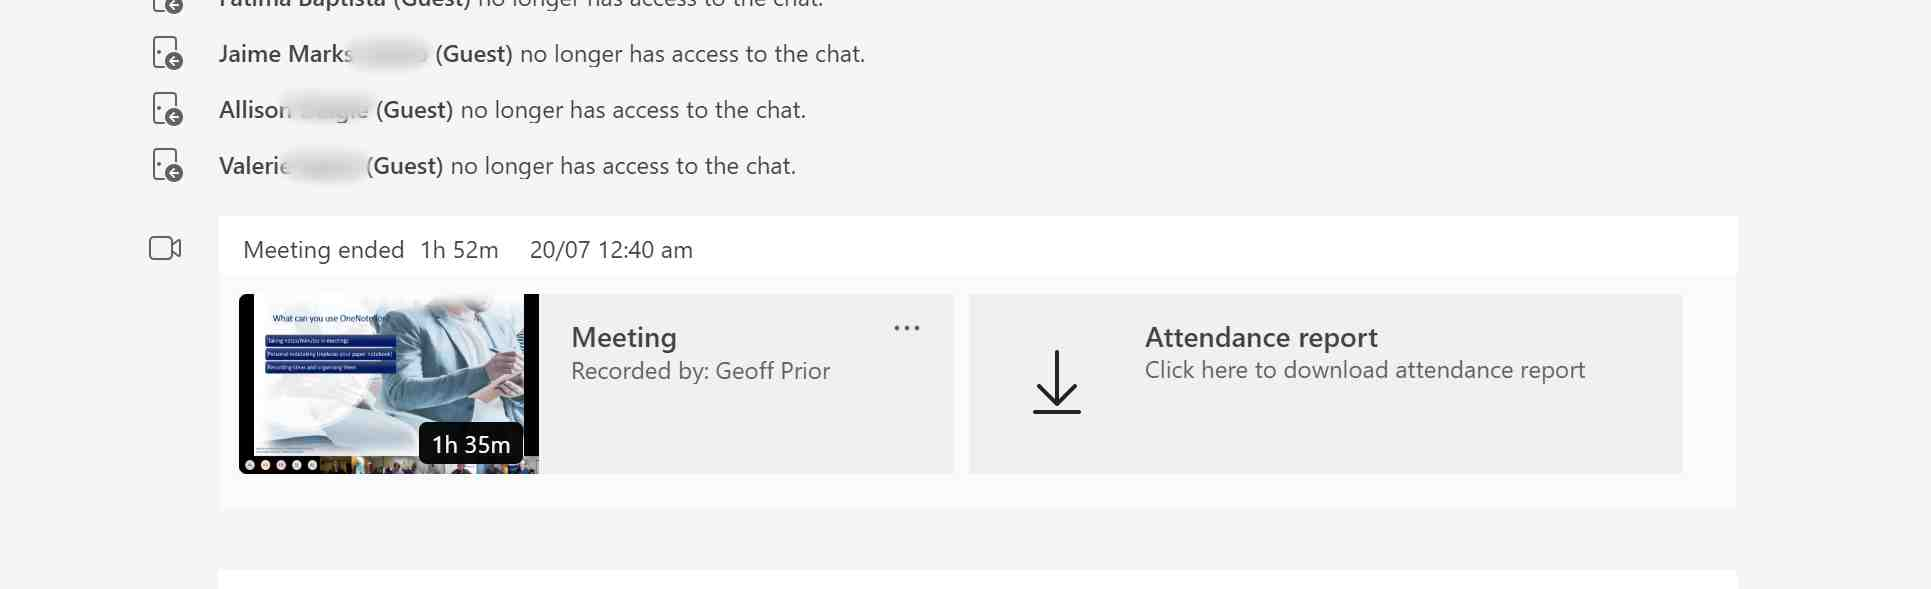 A Screenshot showing the Microsoft Teams Meeting Recording appearing in the Chat